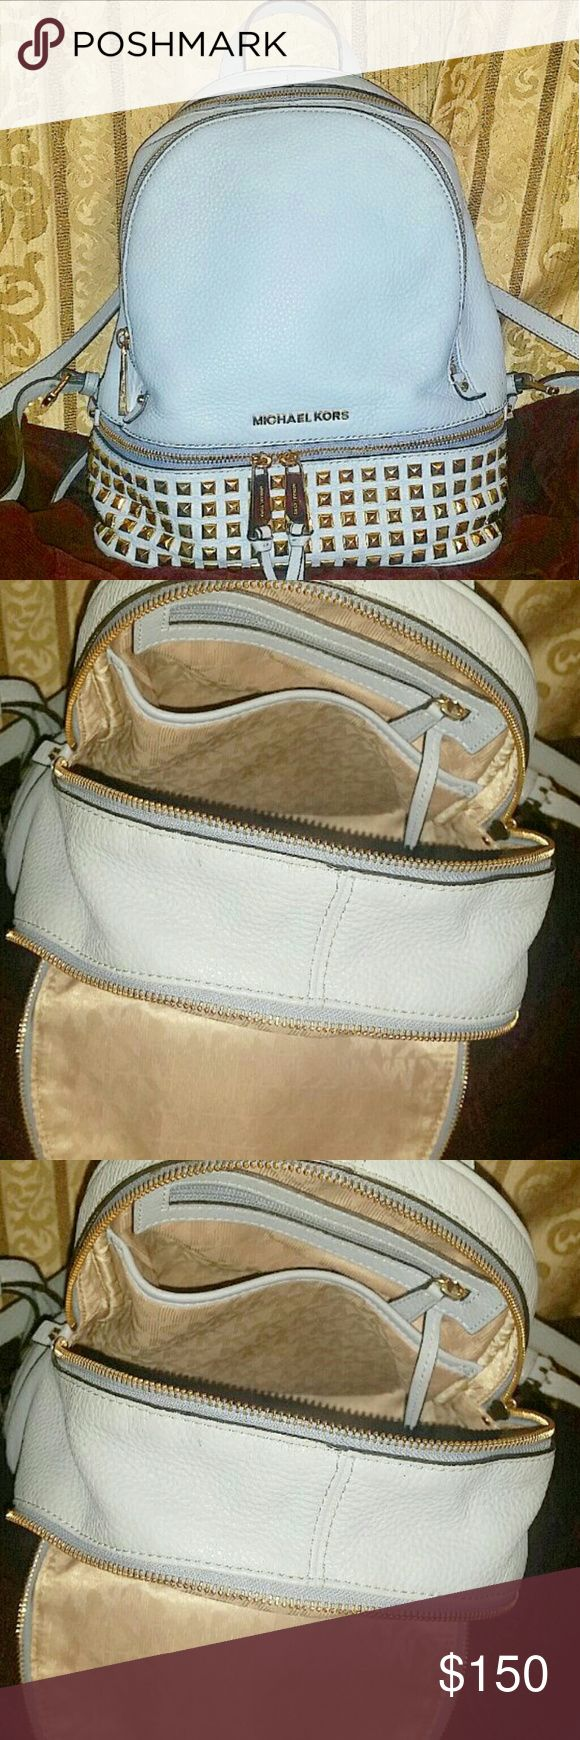 Michael Kors studded backpack purse Lovely Baby blue leather bookbag Michael Kors backpack  Gently USED  AUTHENTIC MICHAEL KORS Studded  leather BAG  ***Looks great from the outside but does have a small stain in one of the small slip pockets inside. Spilled some blush/lipstick***as shown in the 3rd picture ****  Smoke free home  Gold Michael Kors hardware  Small/Medium size.   Placed waterbottle in the last picture for size reference  Not big enough for textbooks, but big enough for a…